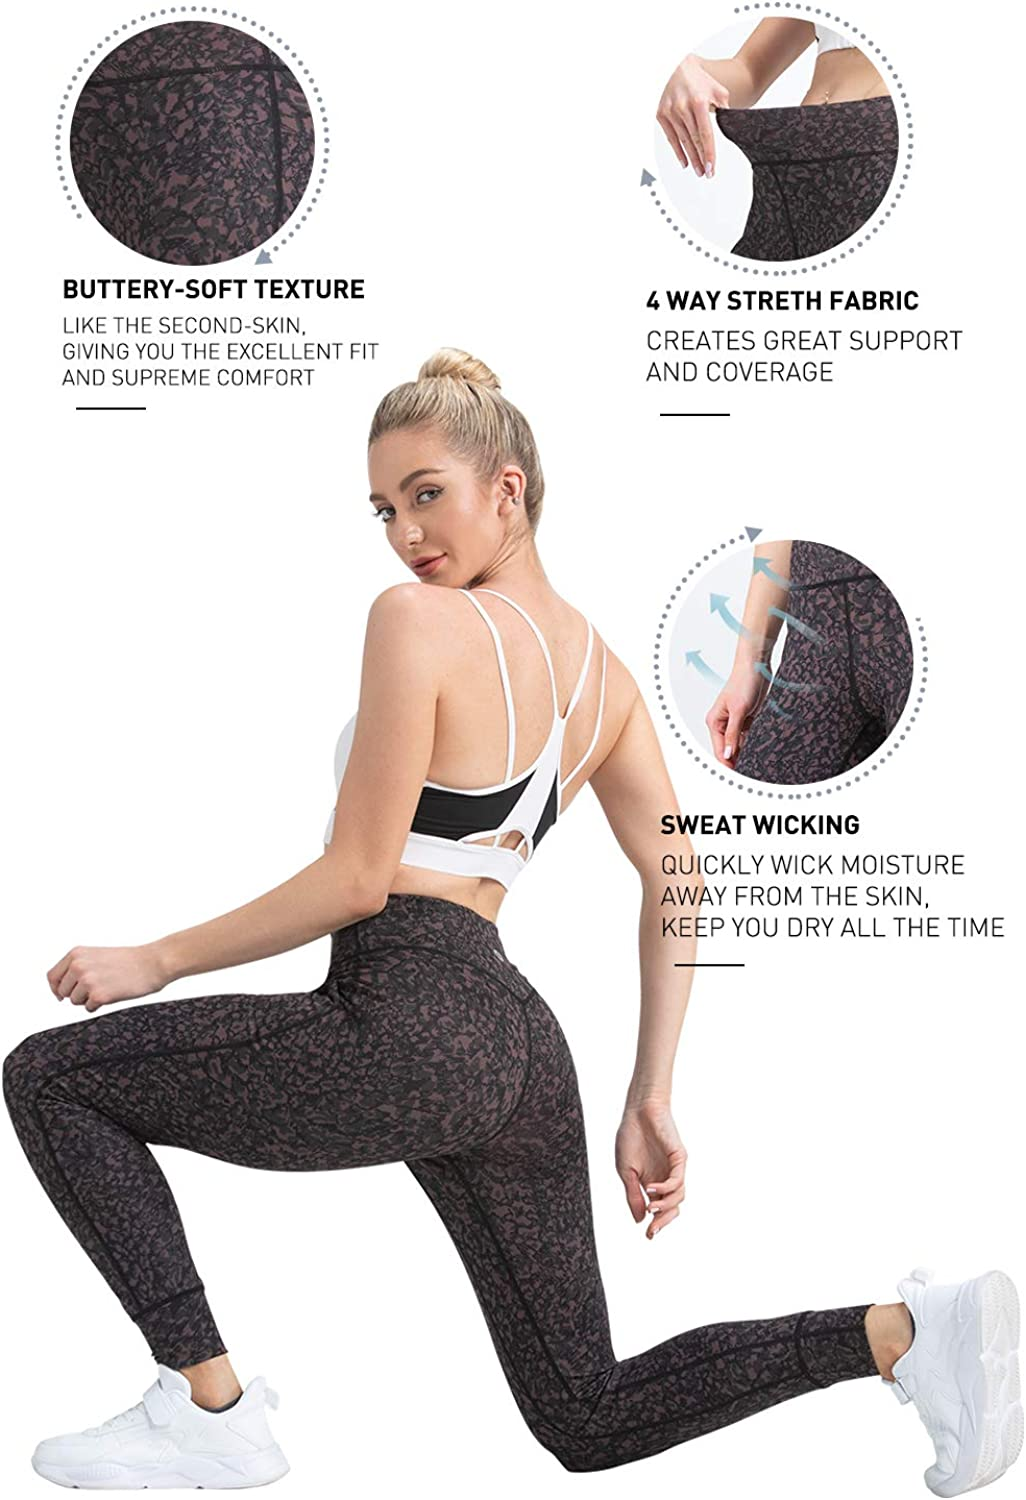 FETY Womens Athletic Joggers High Waist Sweatpant Yoga Pant with Pockets for Workout Running